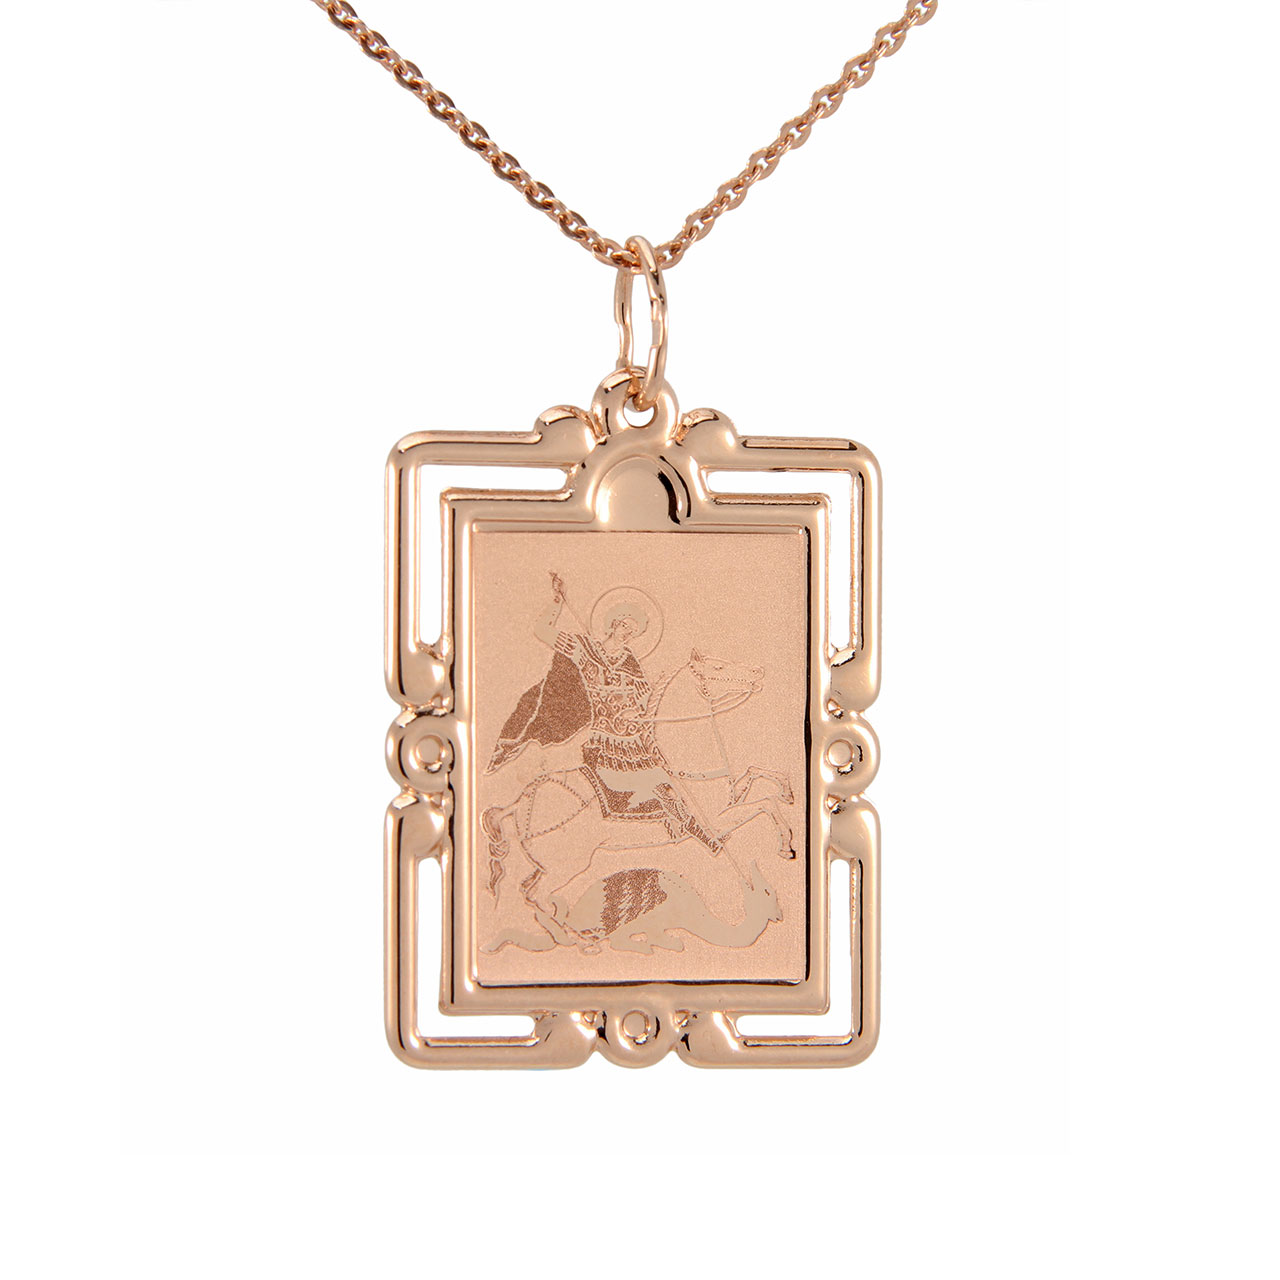 pendant george products french fleur mix kande channel medallion forest with gold image de in st lis equestrian necklace cross